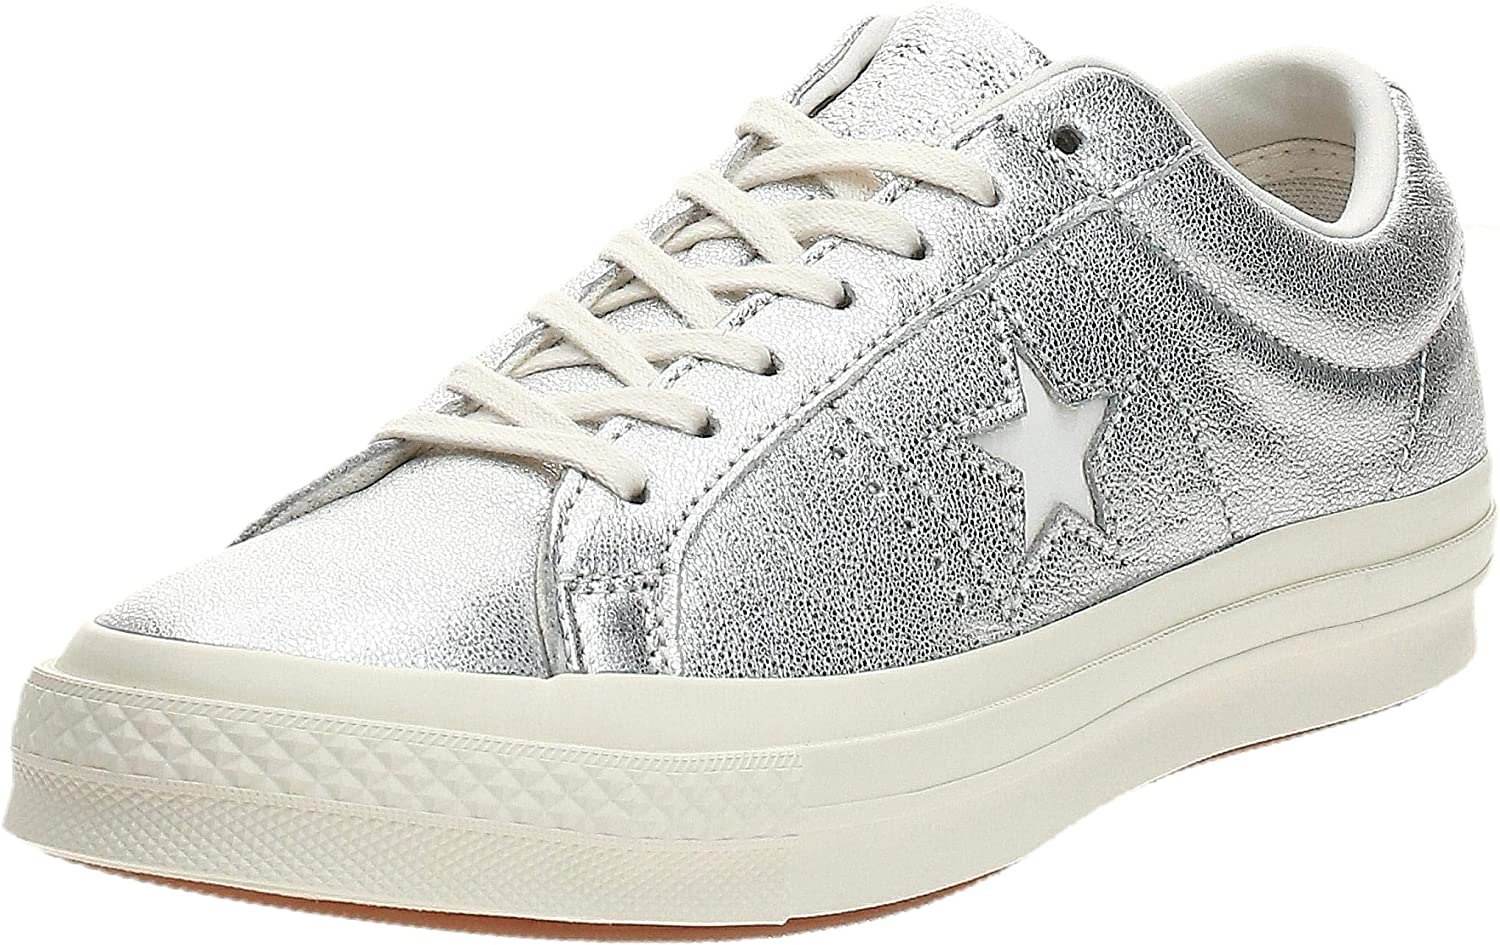 Converse Unisex Adults' Cons One Star